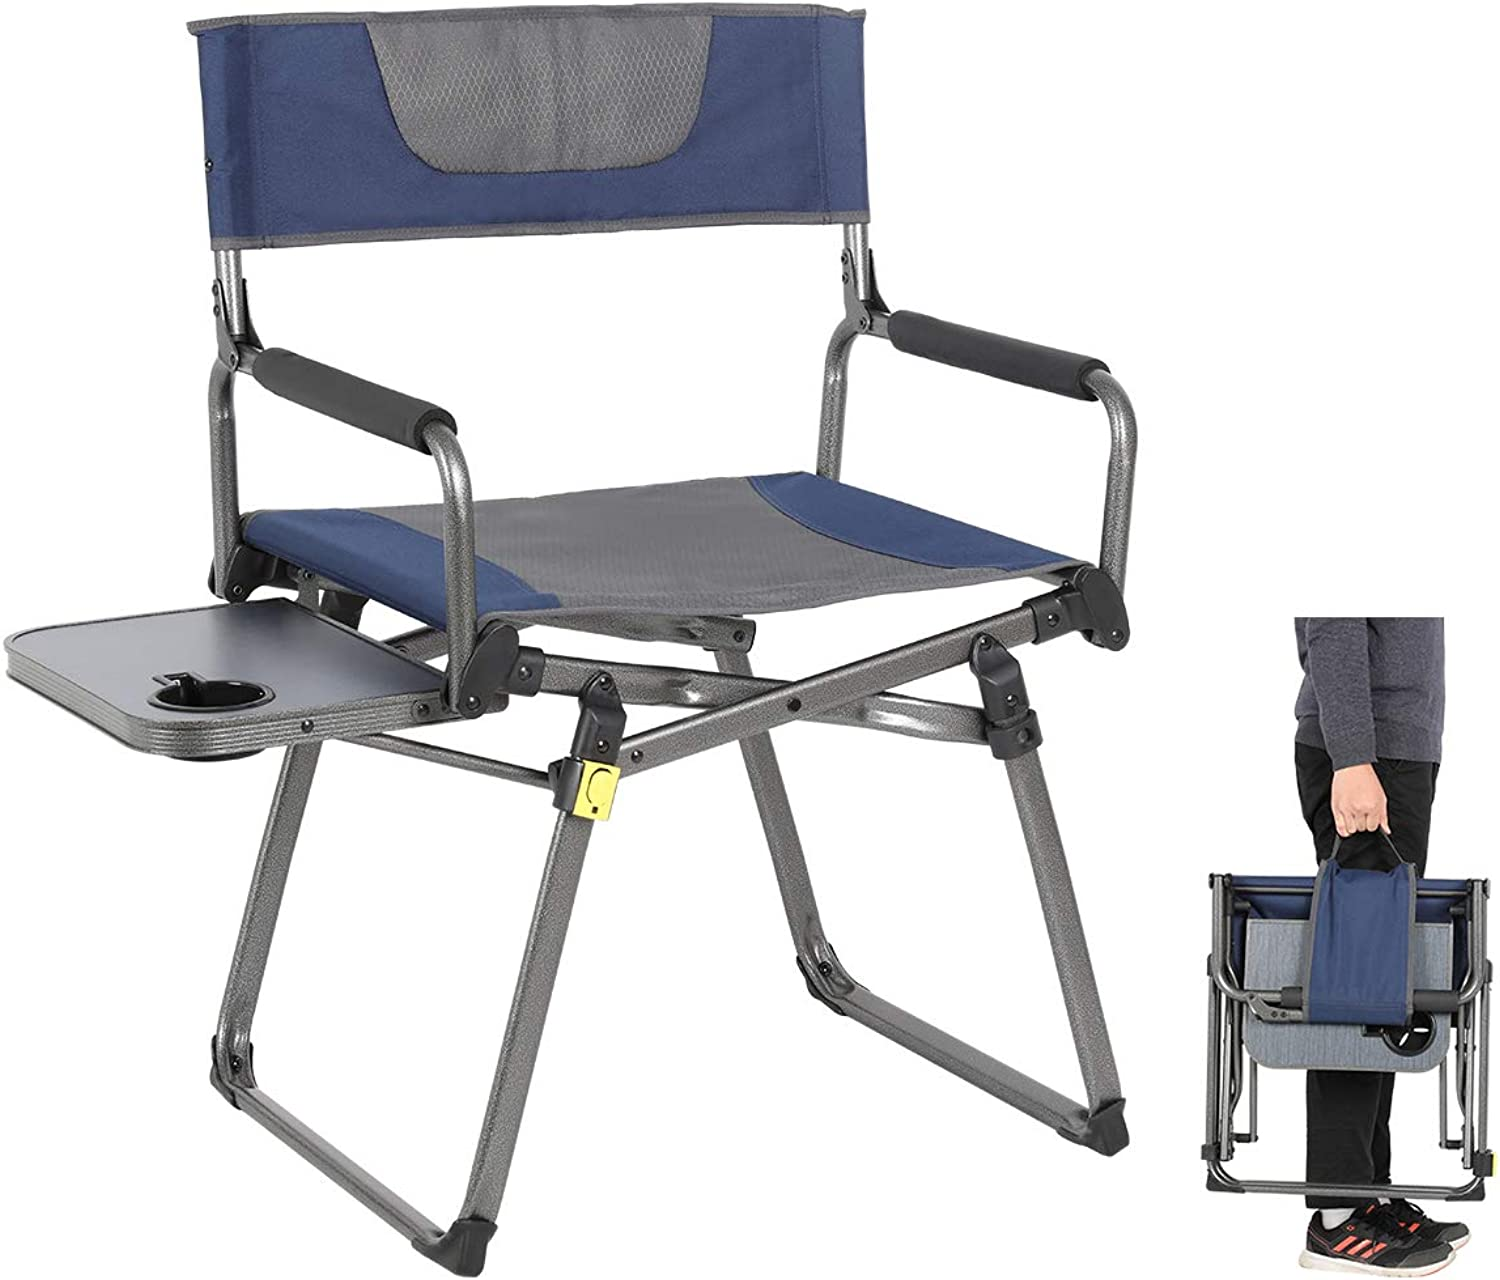 PORTAL Compact Folding Directors Chair Heavy Duty Folding Chair Padded with Carry Strap, Side Table and Armrest,Supports 300 lbs